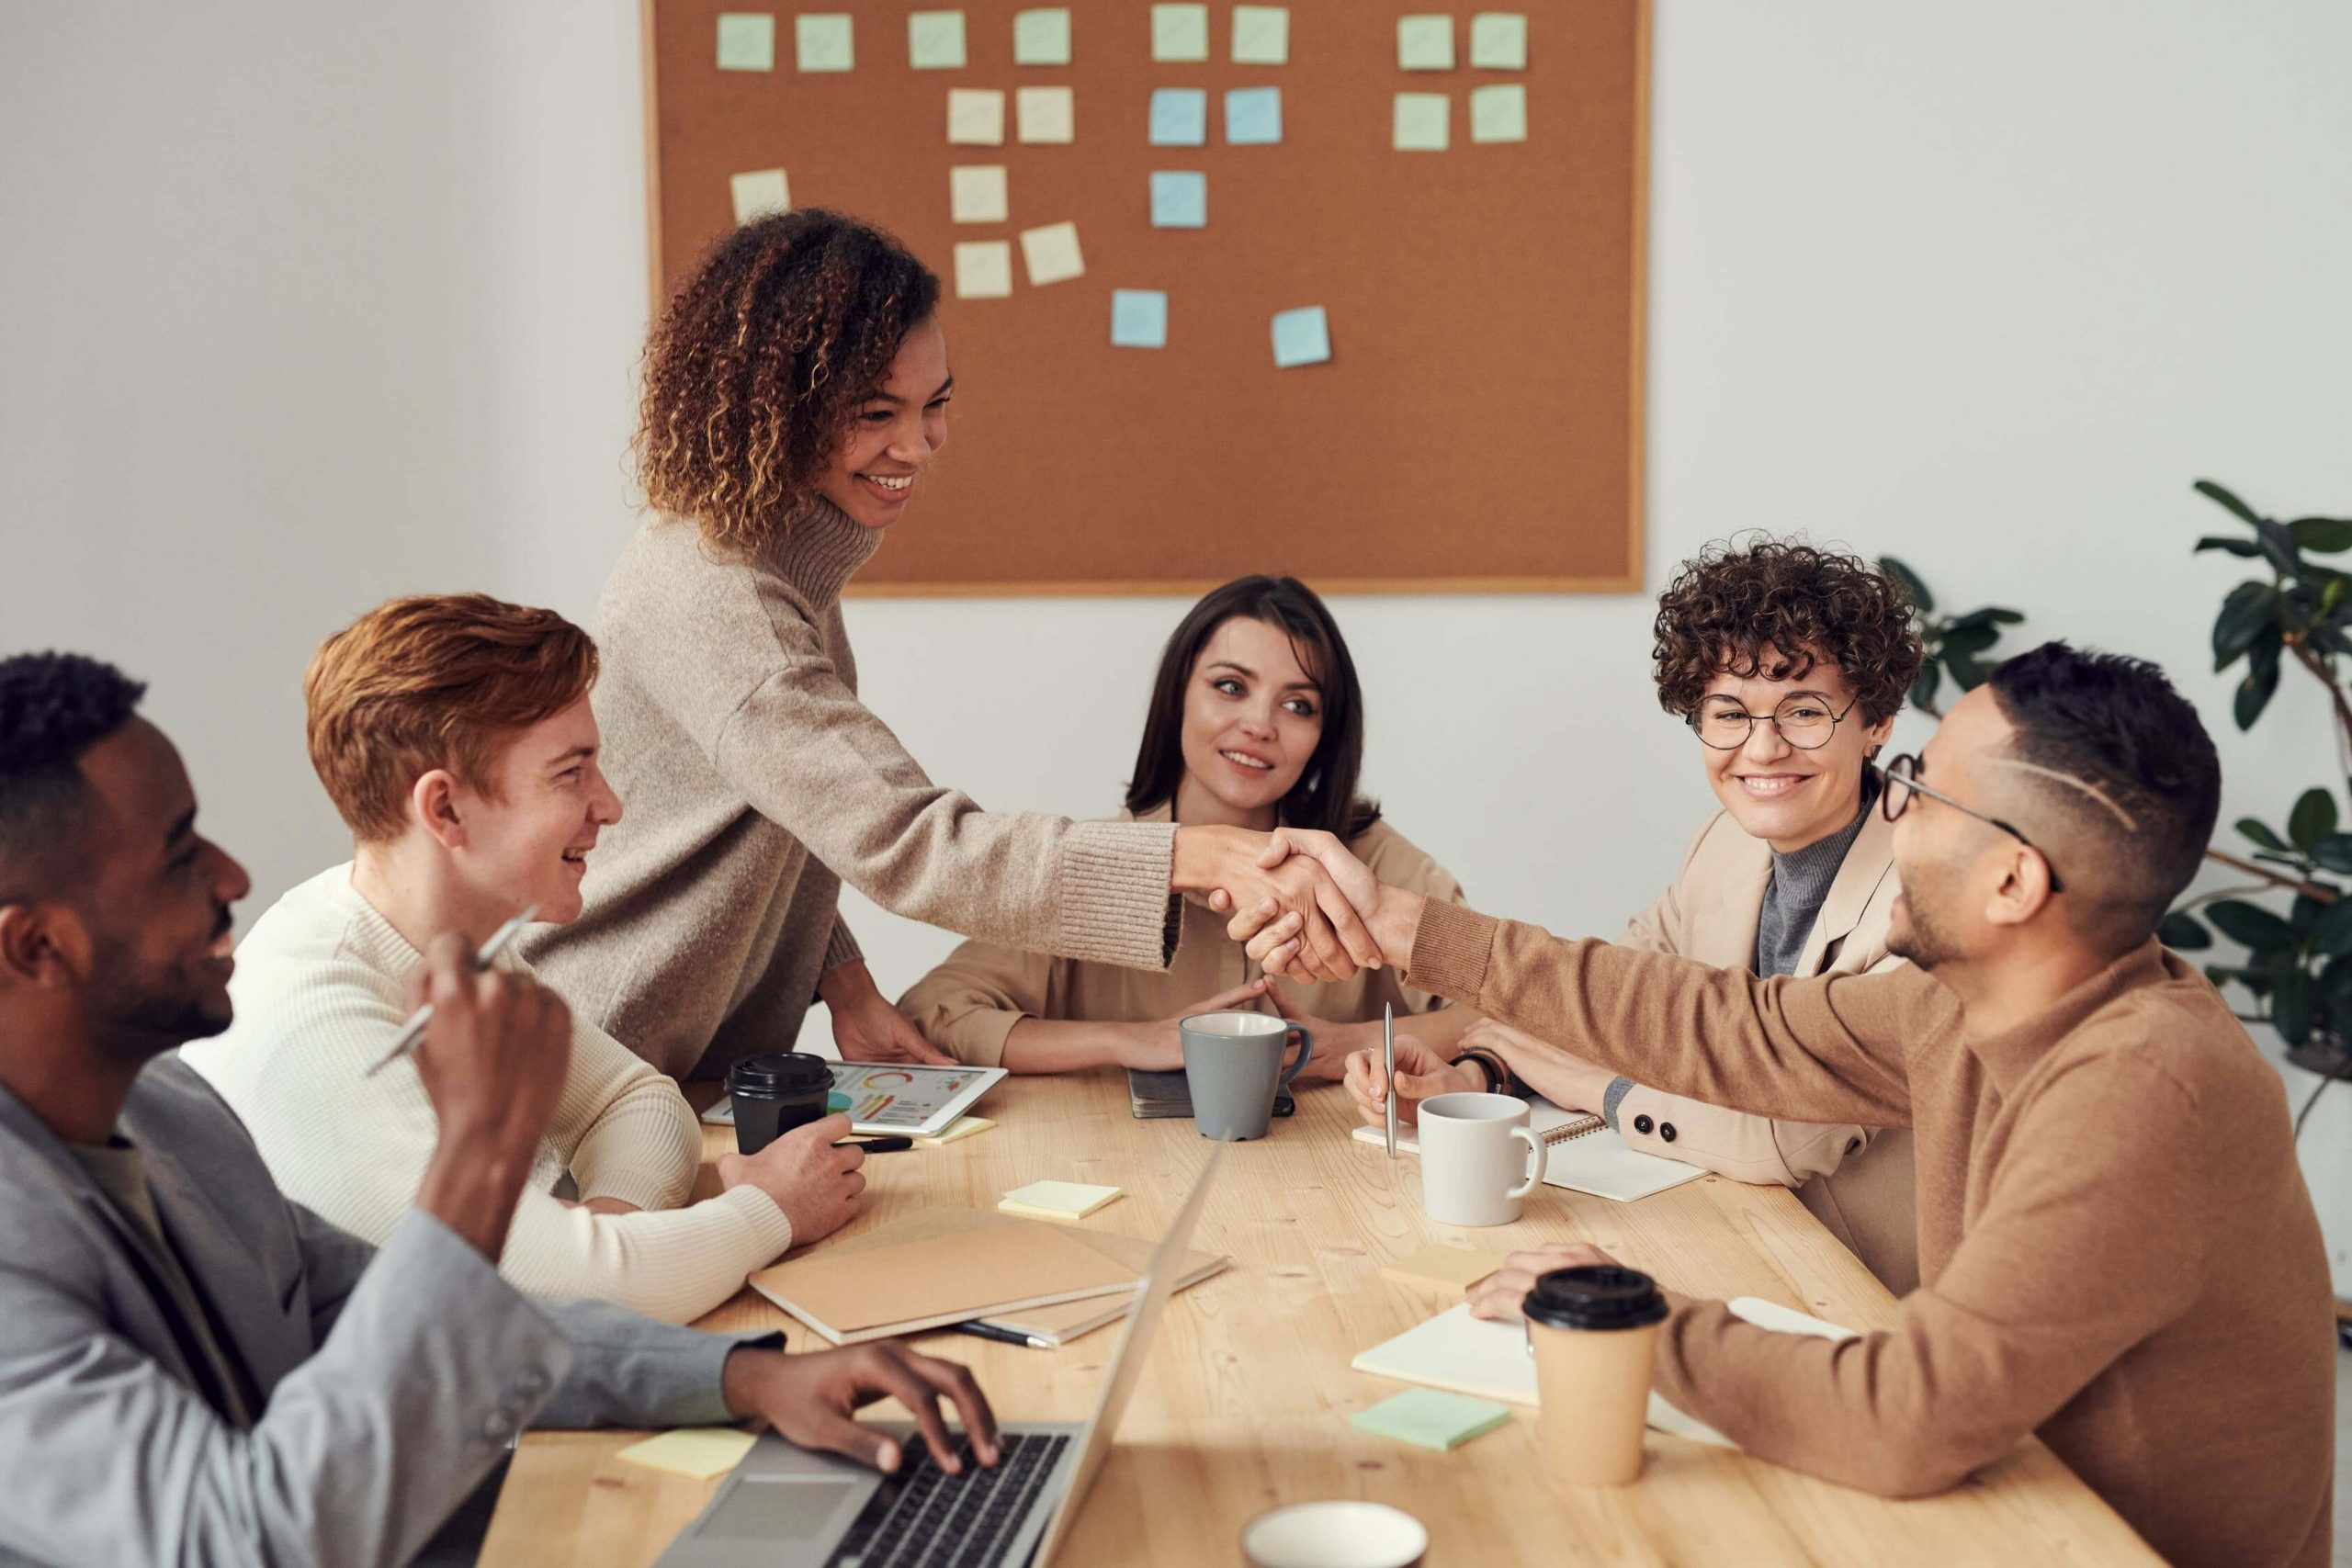 diversity and inclusion Featured Image